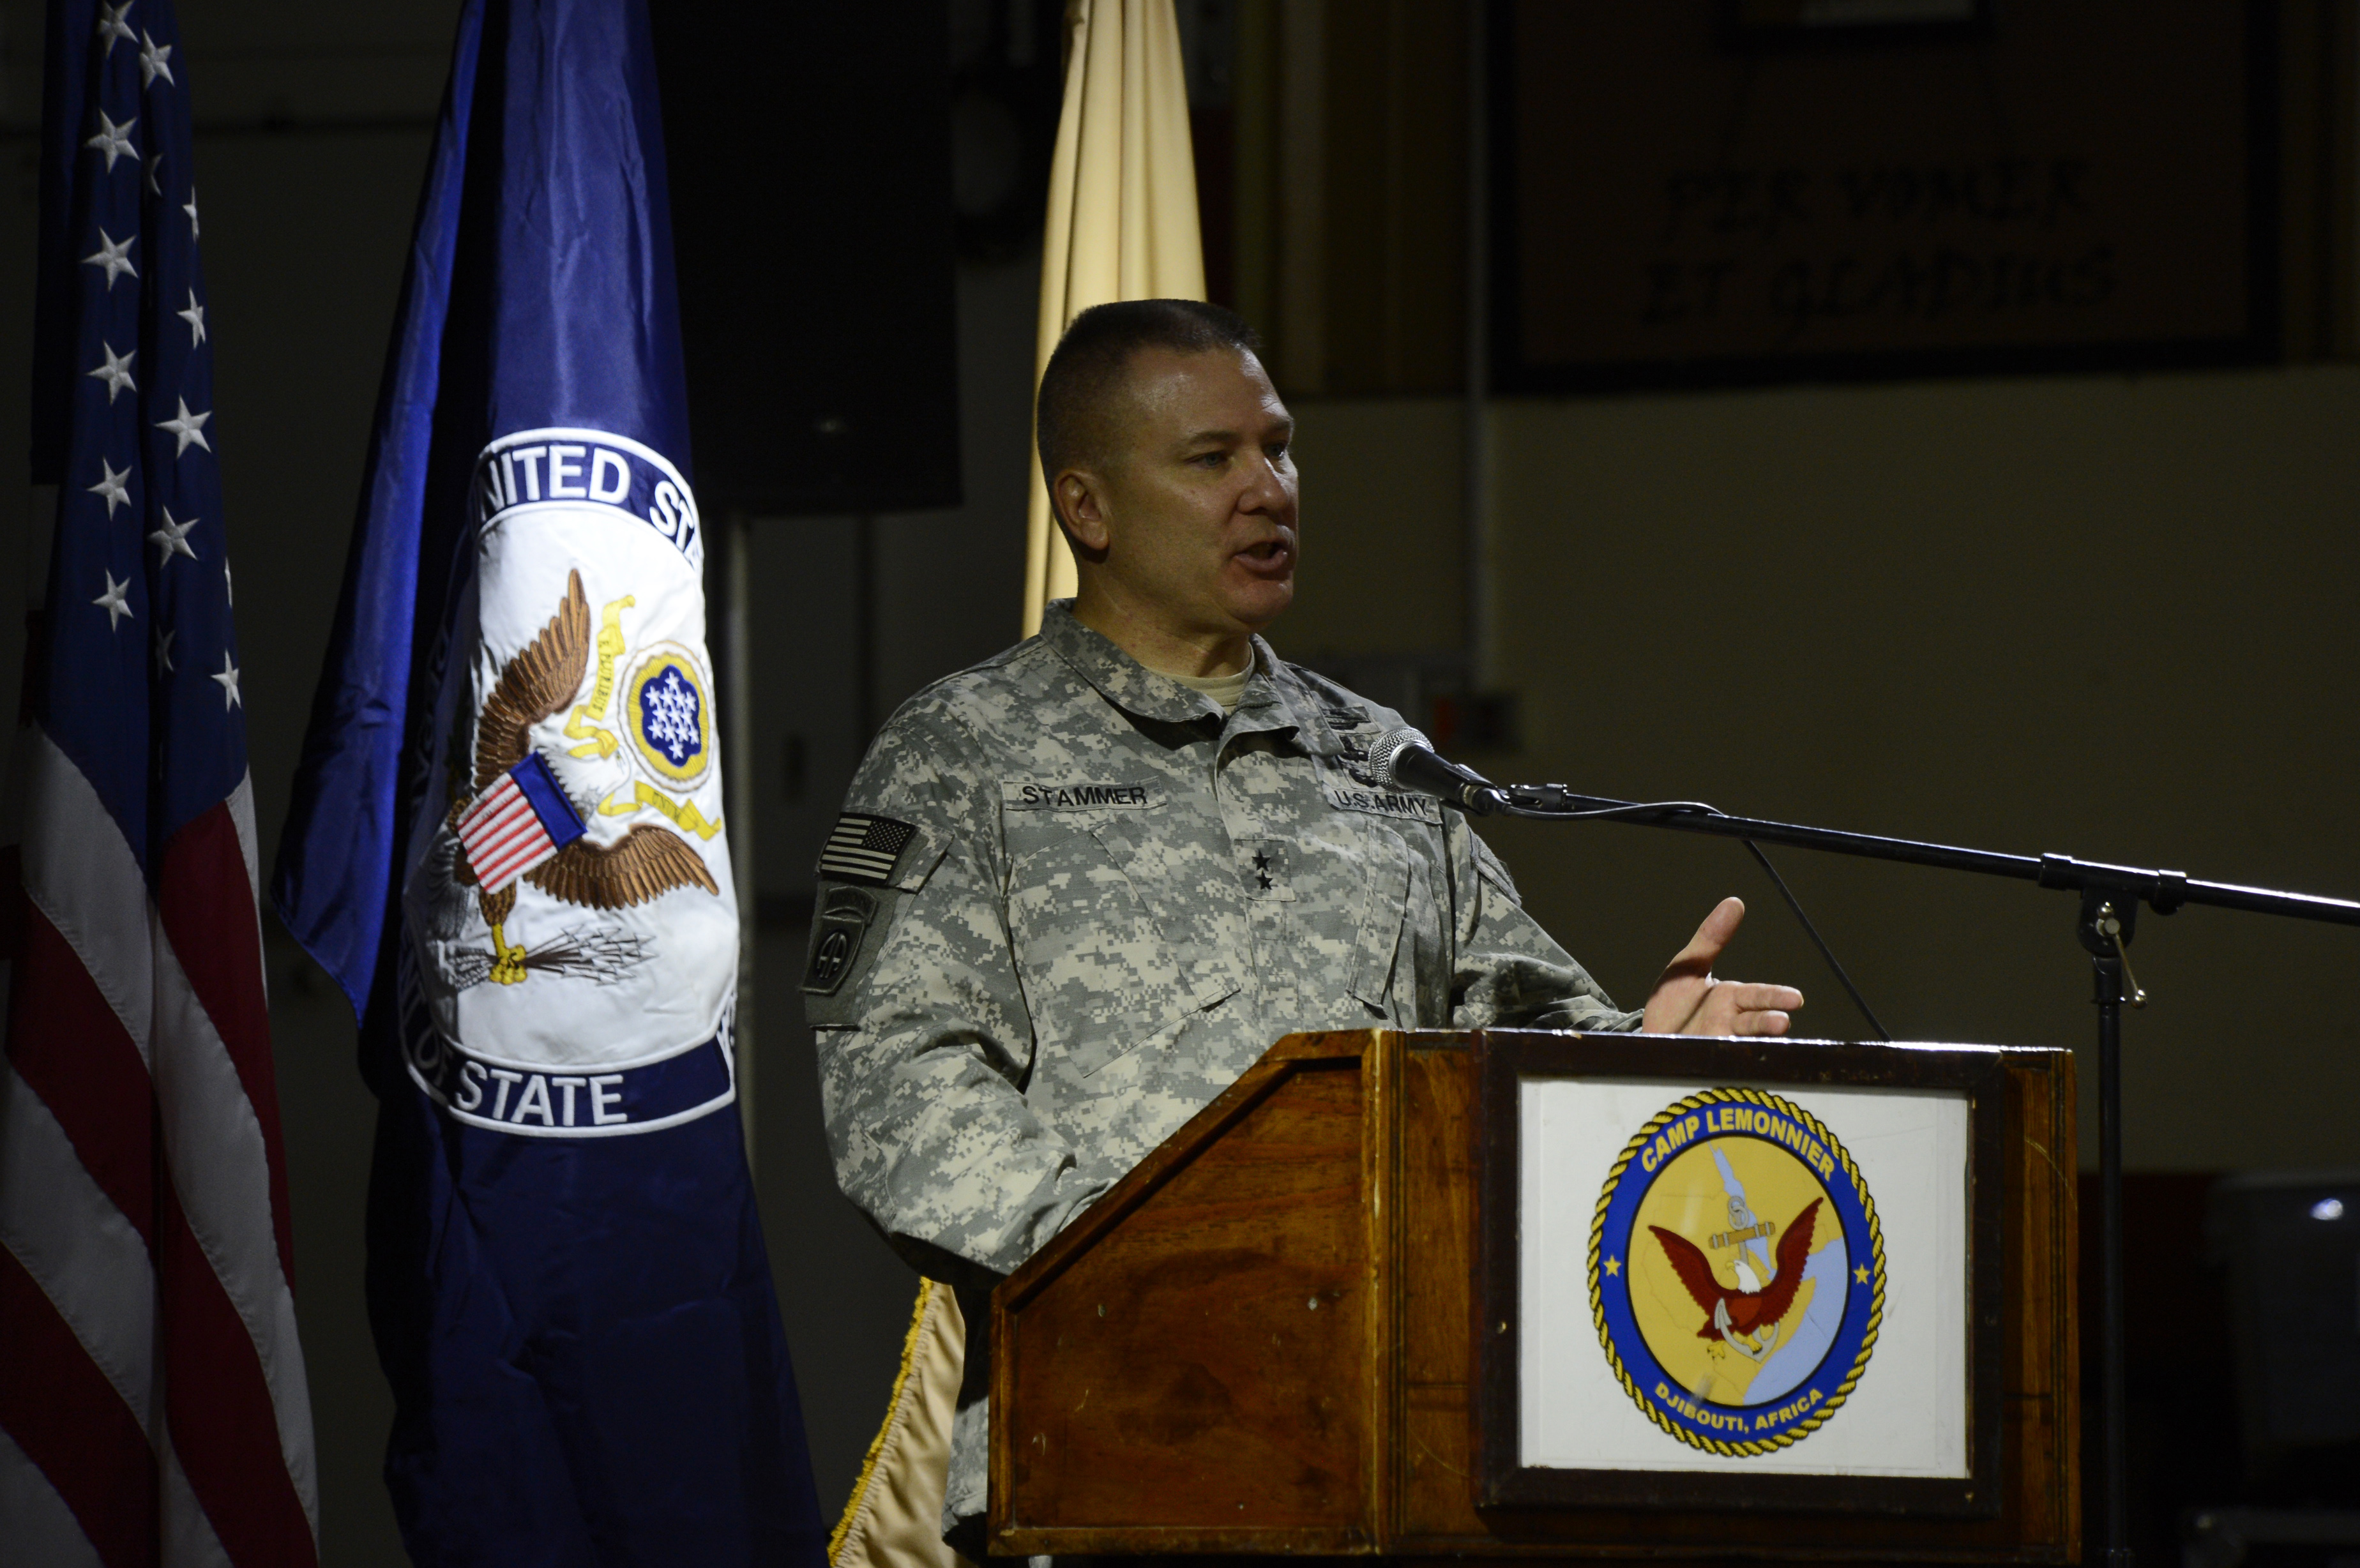 U.S. Army Maj. Gen. Mark Stammer, Combined Joint Task Force-Horn of Africa commanding general, speaks to attendees at the conclusion of the East Africa Security Synchronization Conference Jan. 22, 2016, at Camp Lemonnier, Djibouti. The conference provided an opportunity for attendees to better understand the benefits of a regional approach to African security instead of strictly country-focused planning. (U.S. Air Force photo by Senior Airman Peter Thompson)